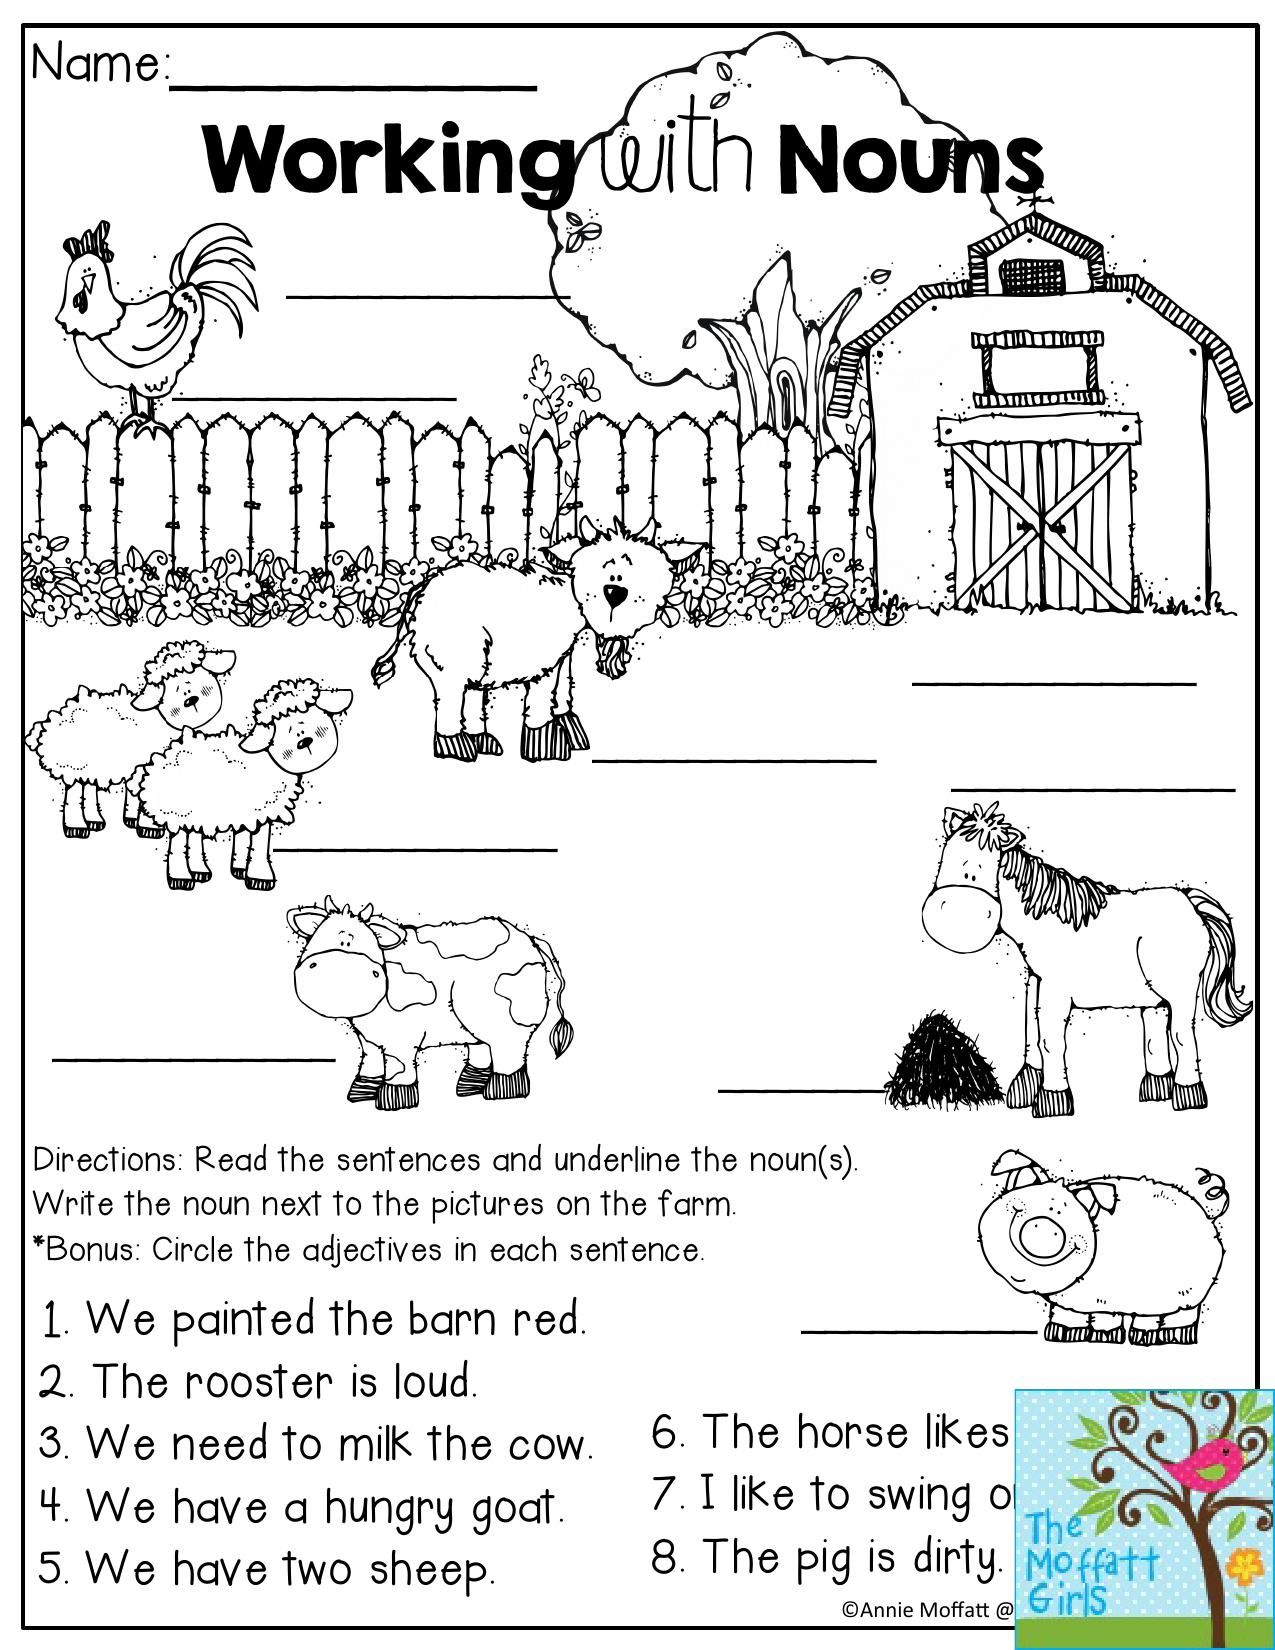 Working With Nouns On The Farm Read The Sentences And Underline The Noun Then Write Th Kindergarten Reading Worksheets Nouns Nouns Worksheet Kindergarten [ 1650 x 1275 Pixel ]